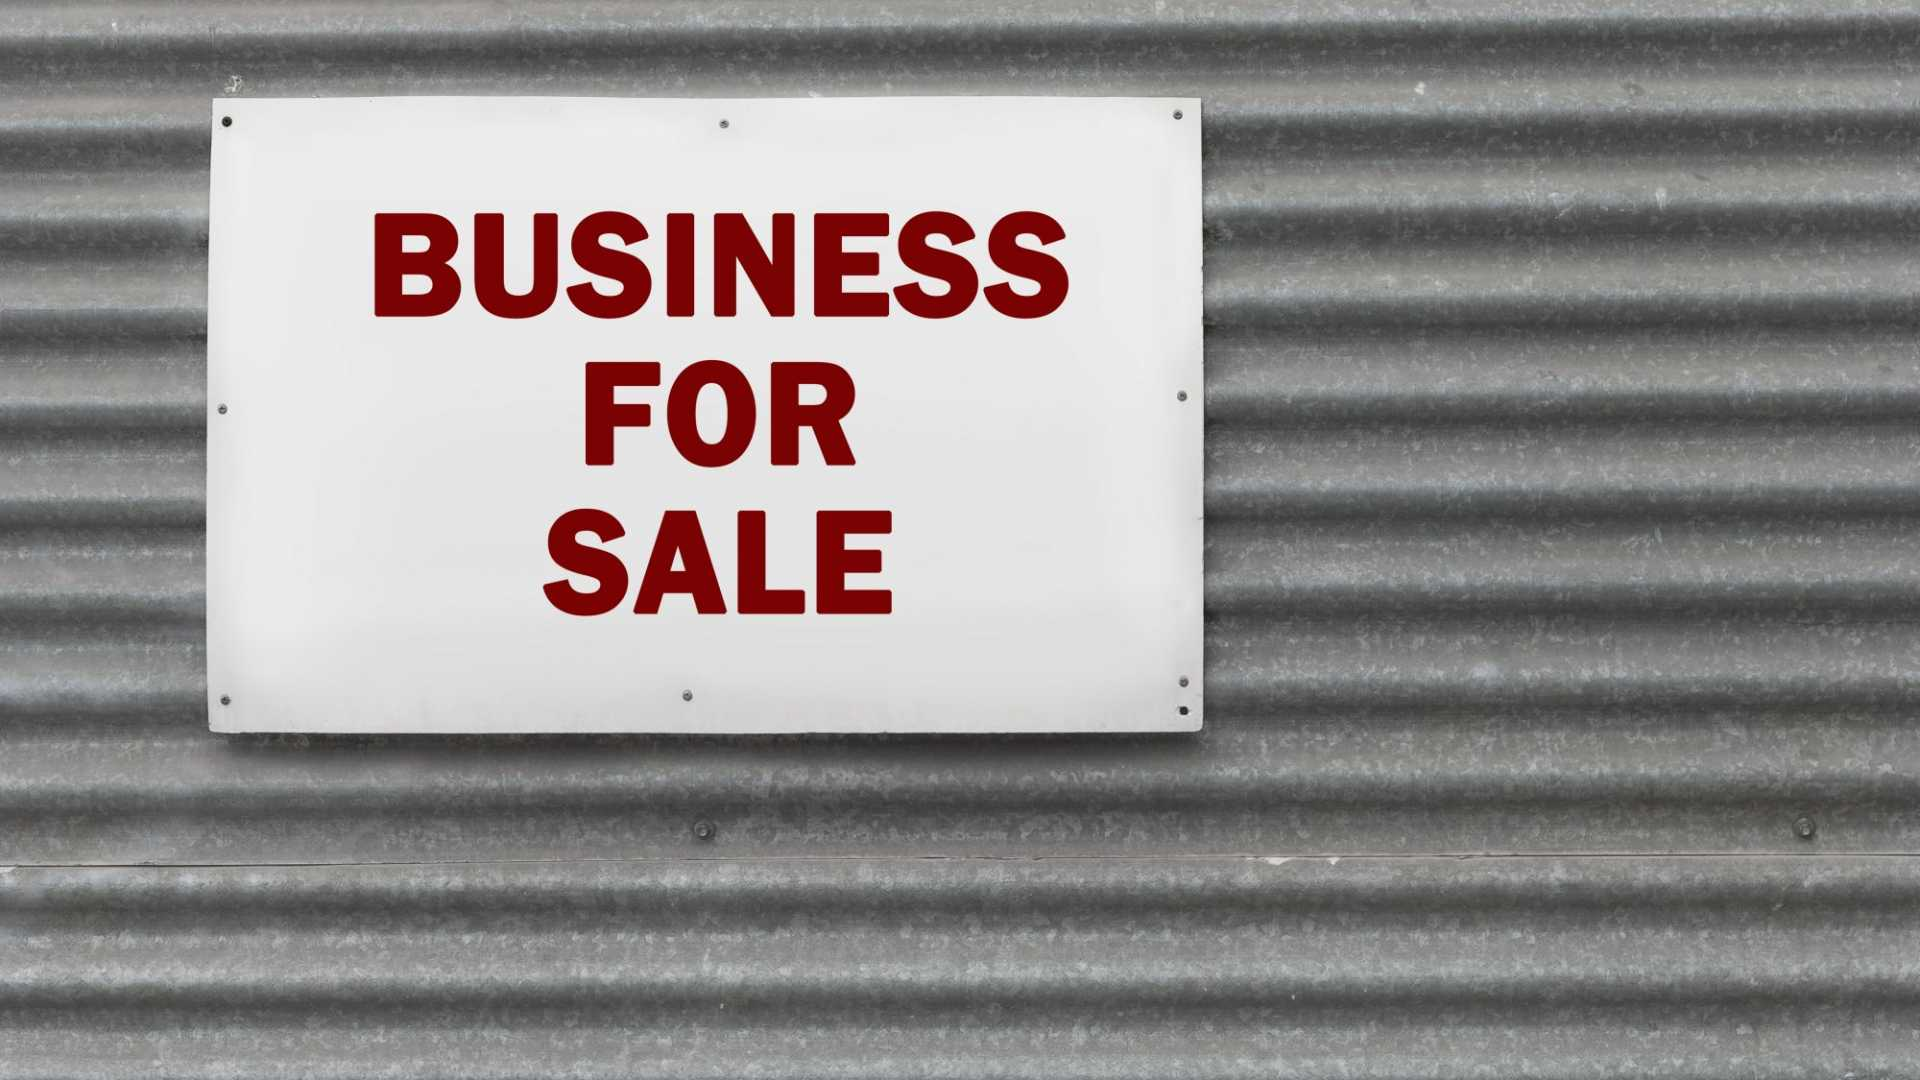 How to Get Started When Selling Your Business